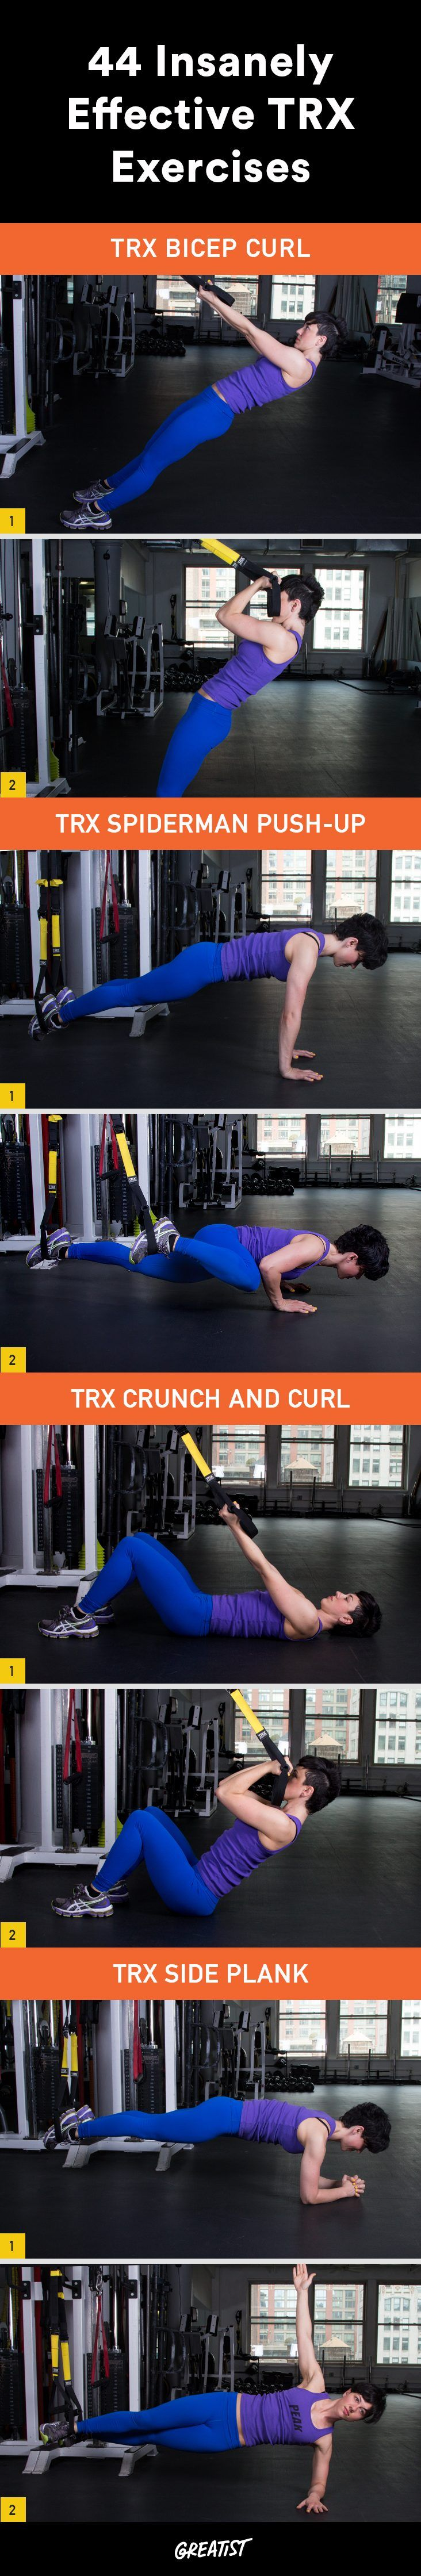 Maybe you've seen these black-and-yellow straps around your gym, but now it's time to put them to work.  https://greatist.com/fitness/effective-TRX-exercises